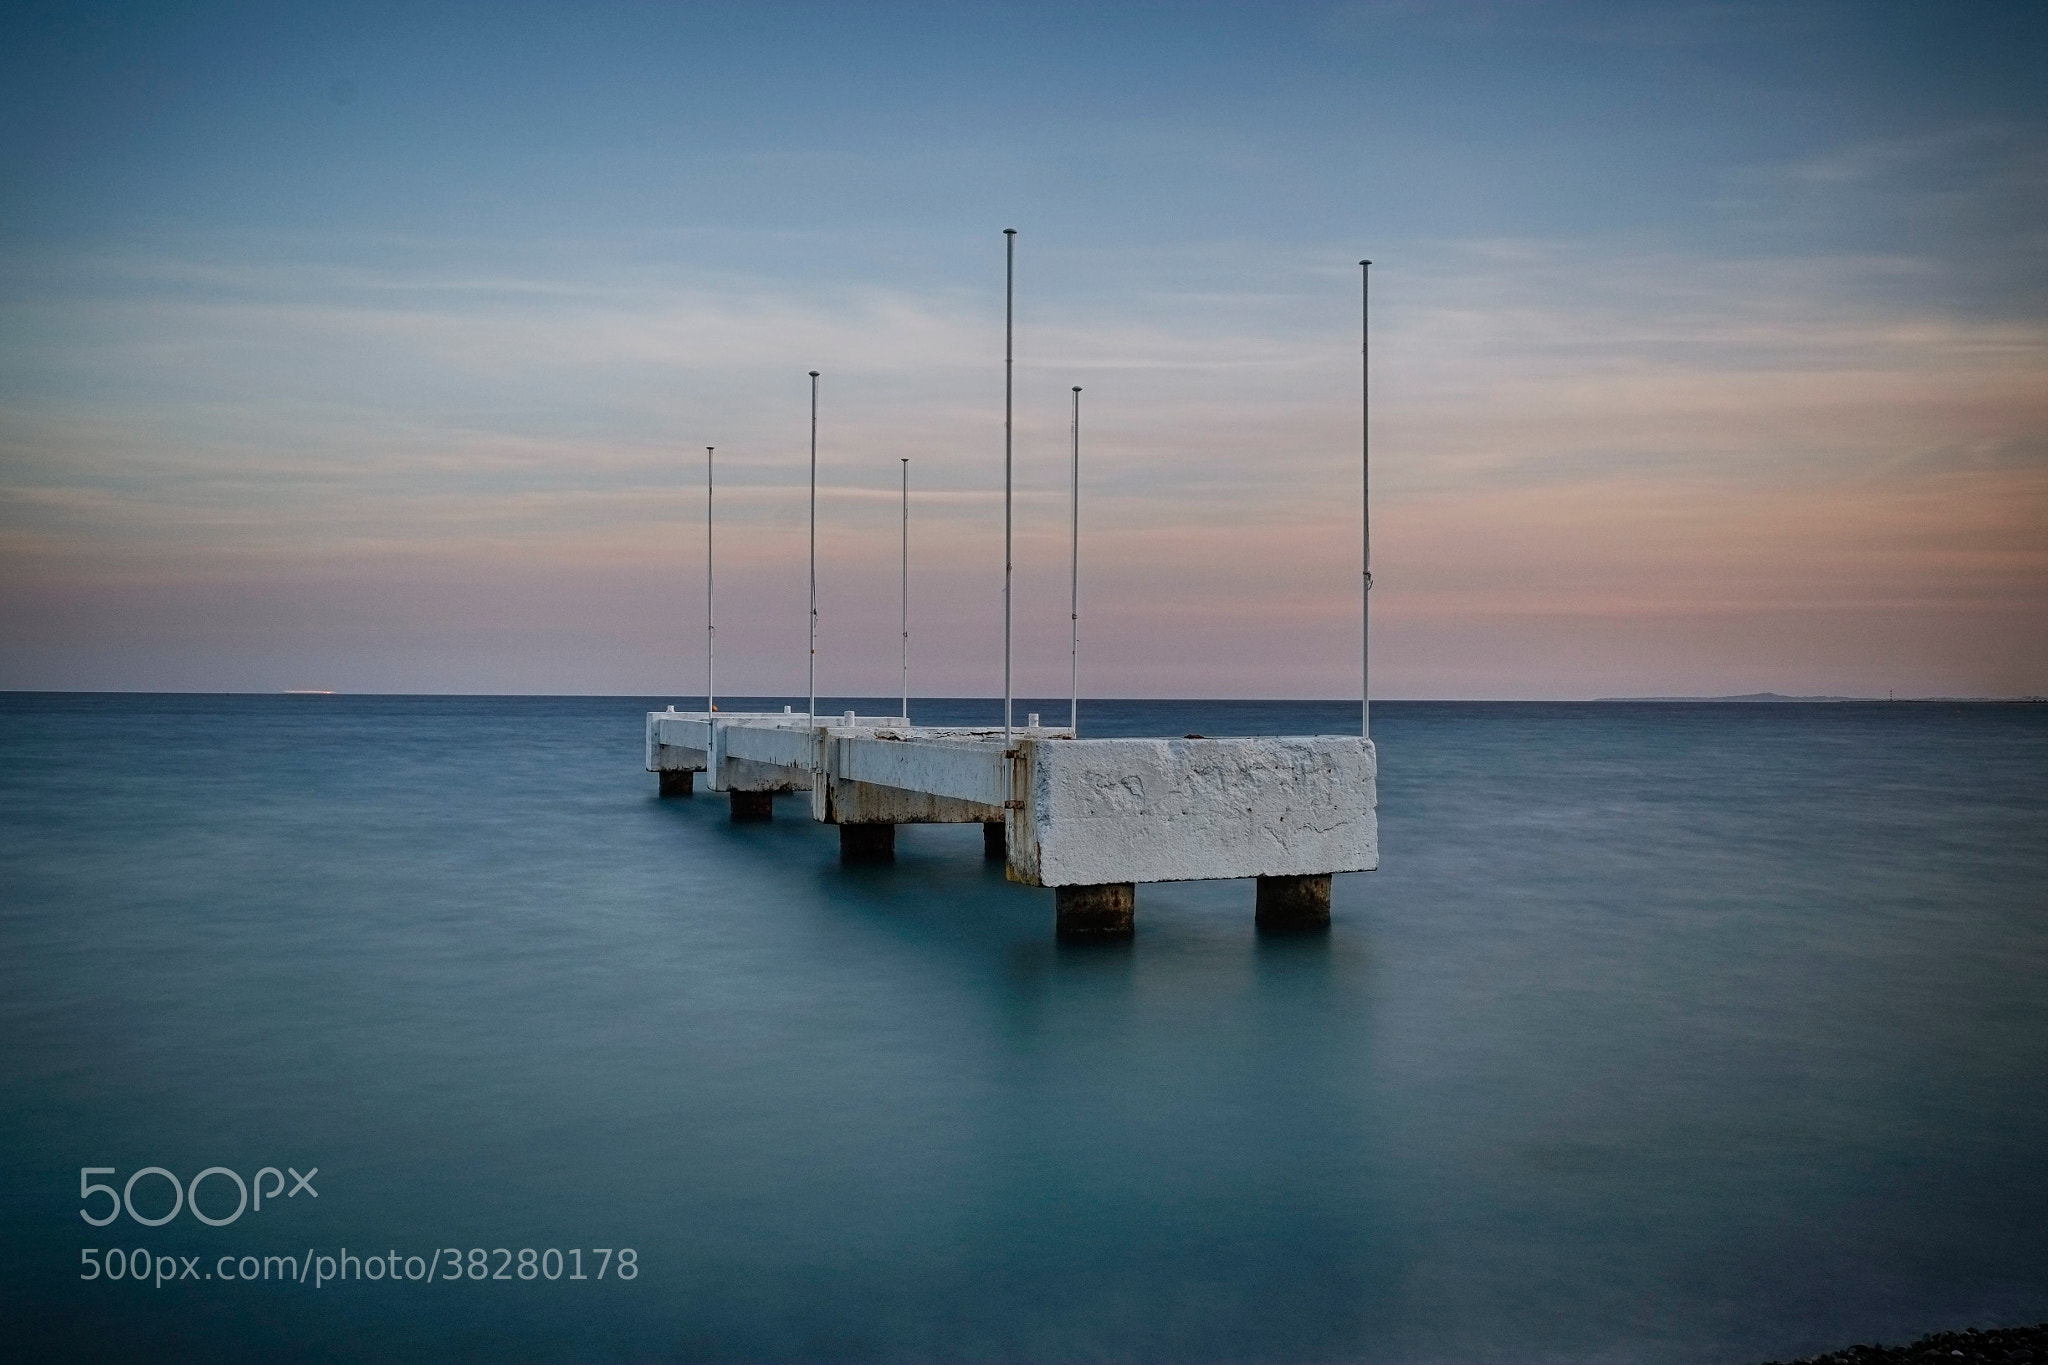 Photograph Nizza Pier by world_image on 500px